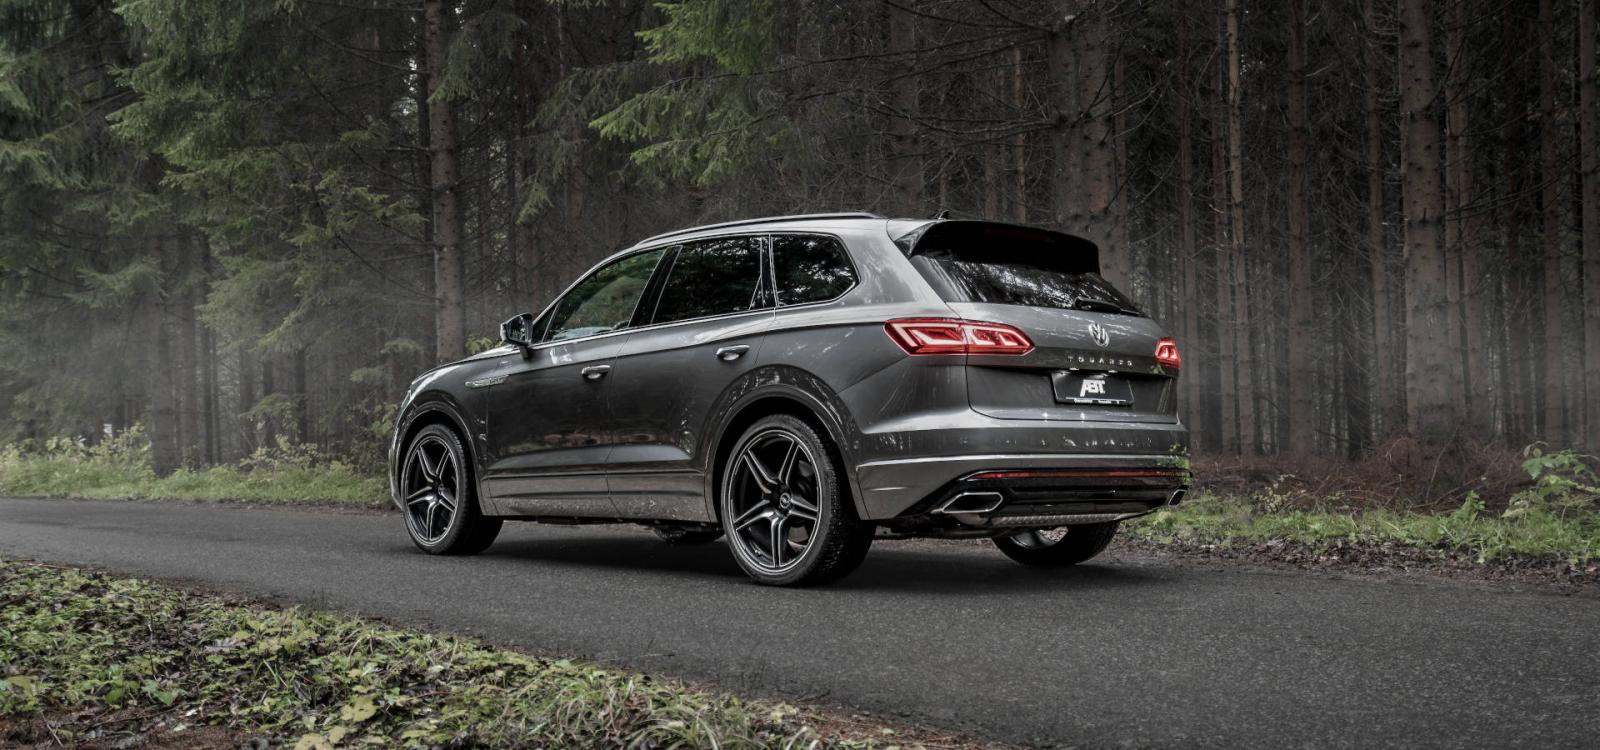 Volkswagen Touareg by ABT